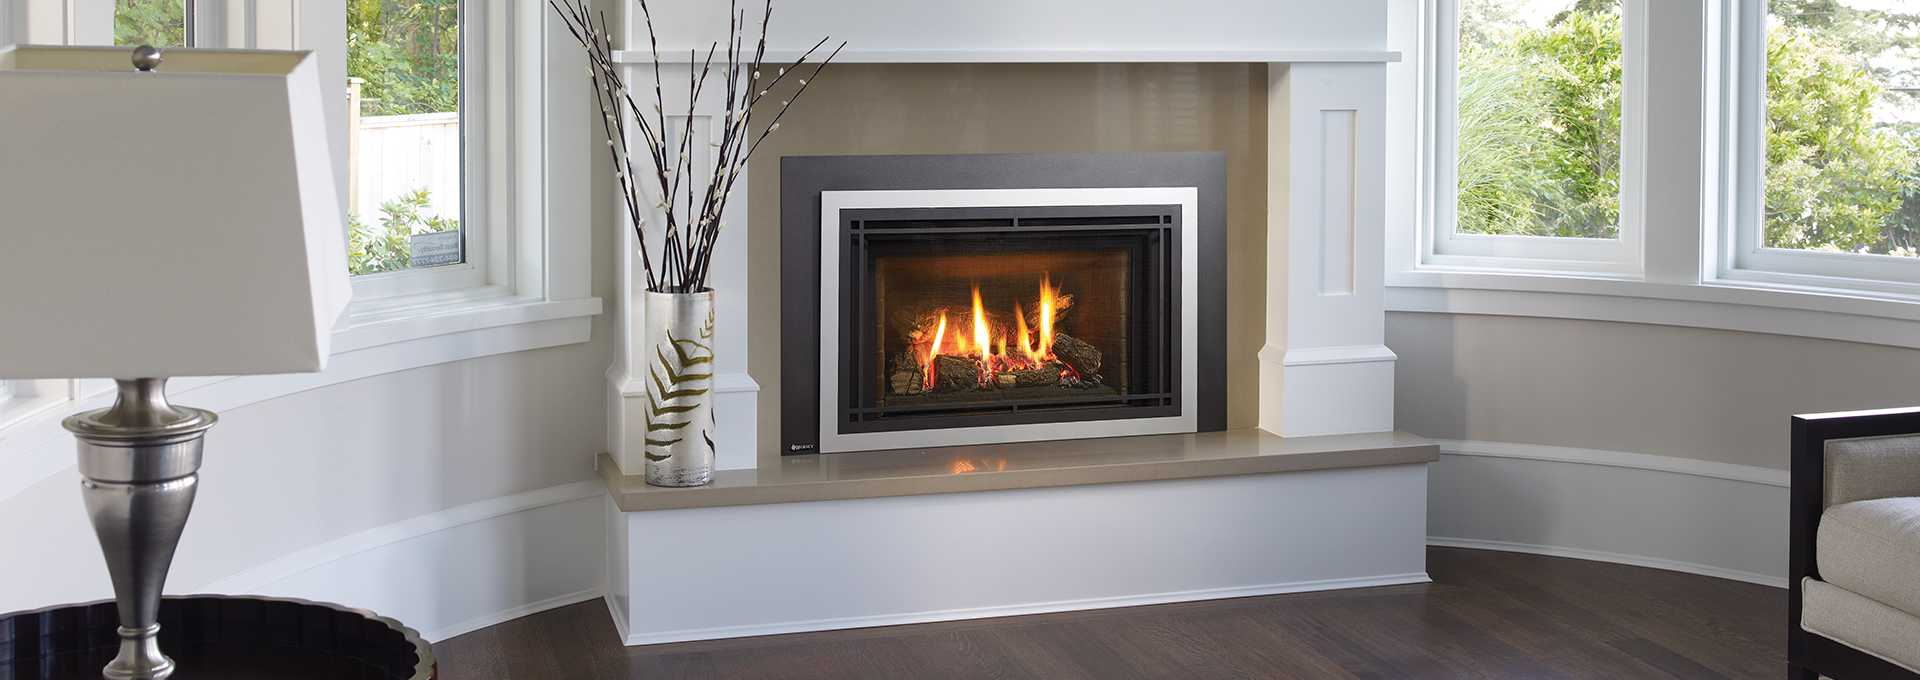 Protip customization goes beyond style the best fireplace manufacturers offer functional accessories like propane gas fireplace insert conversion kits